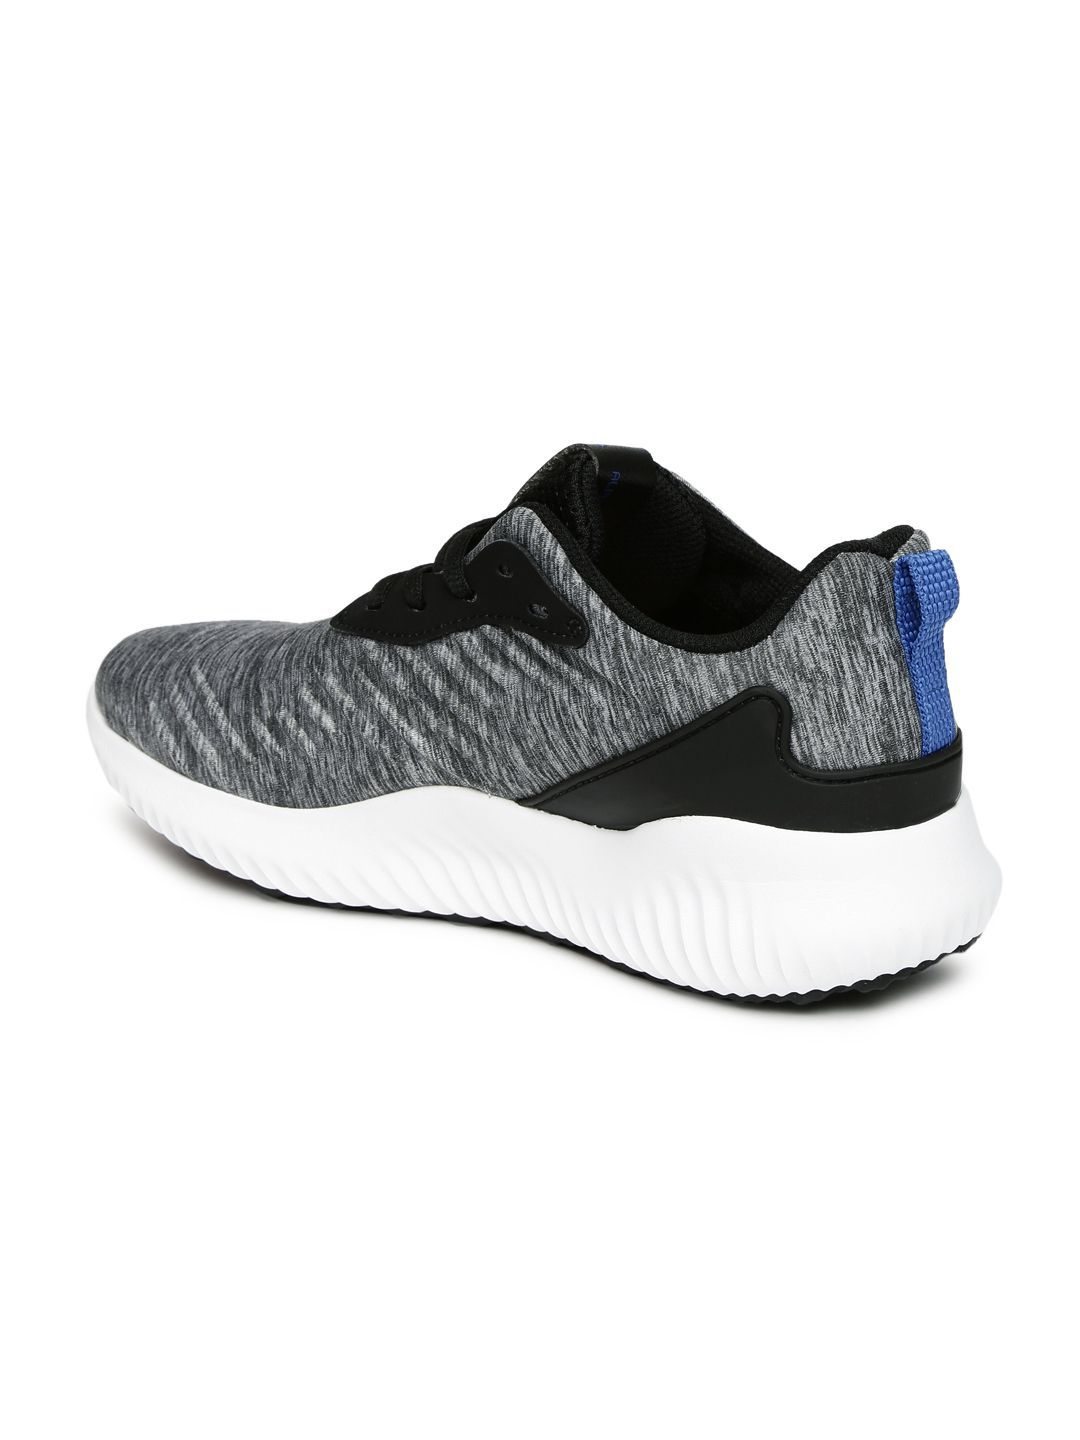 b7026ff2d Adidas Kids Melange ALPHABOUNCE RC J Running Shoes Price in India ...